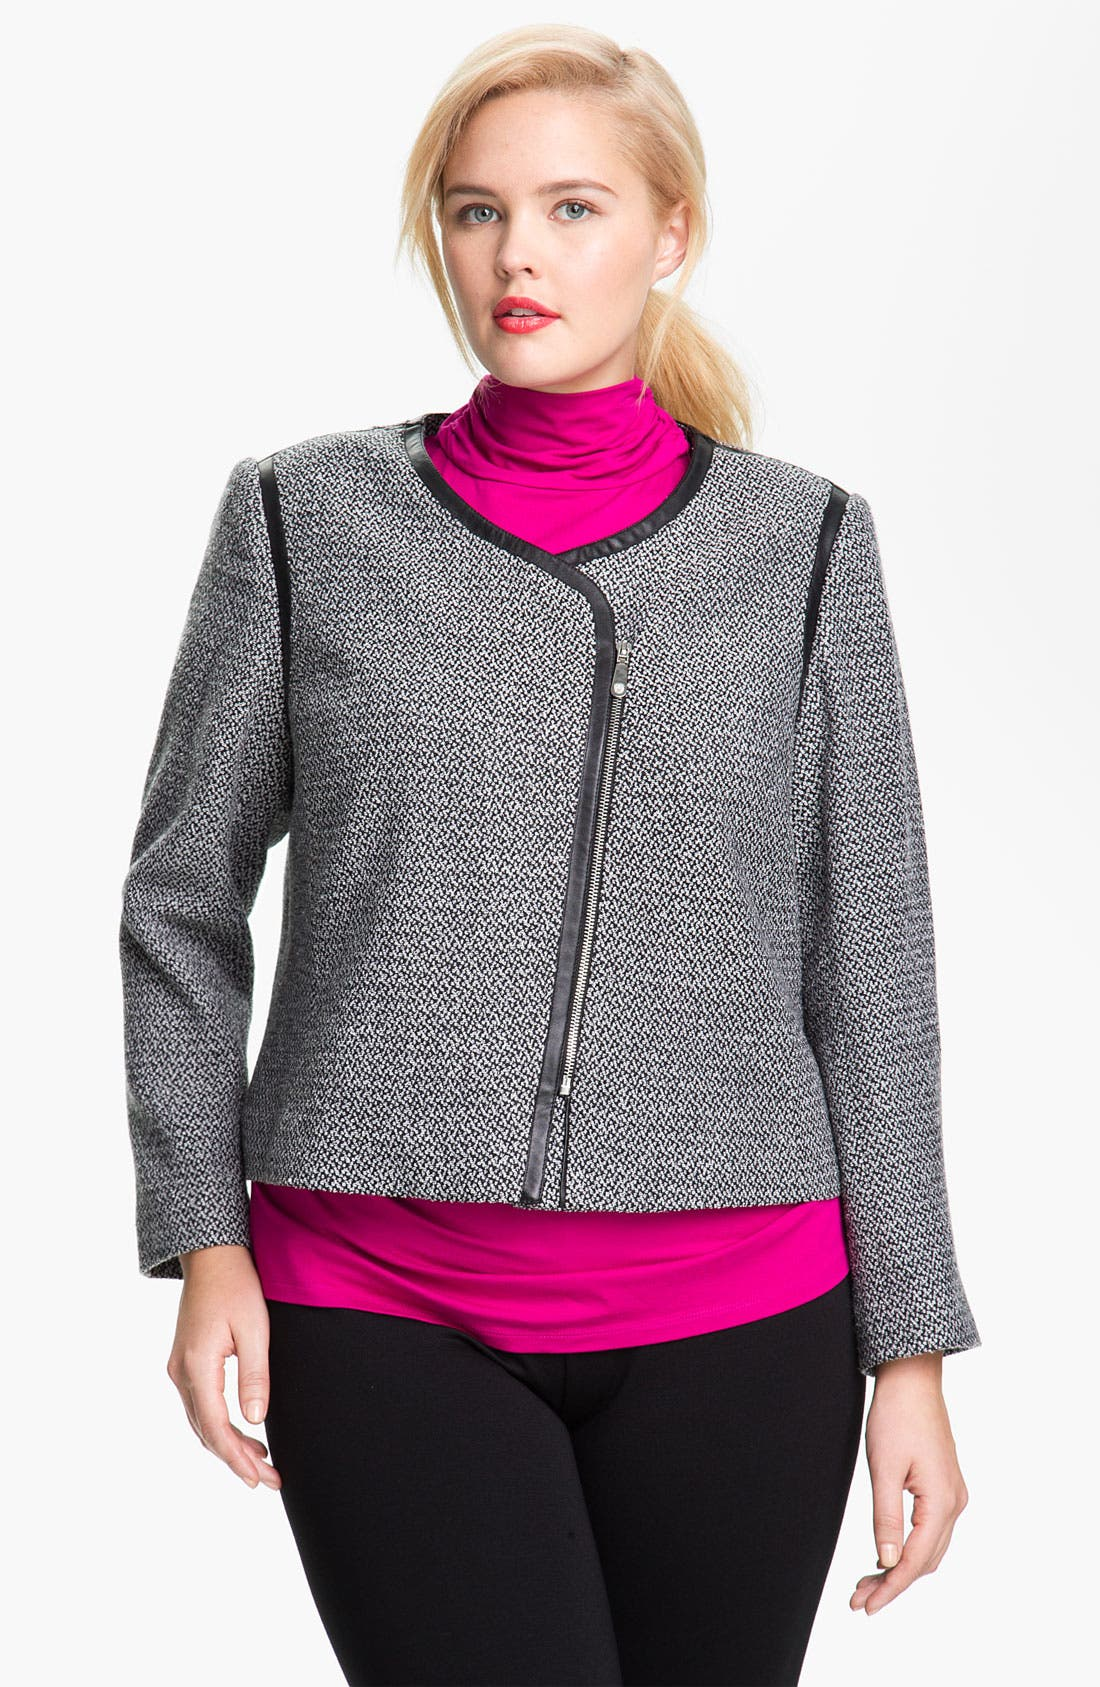 Alternate Image 1 Selected - Vince Camuto Faux Leather Trim Tweed Jacket (Plus)